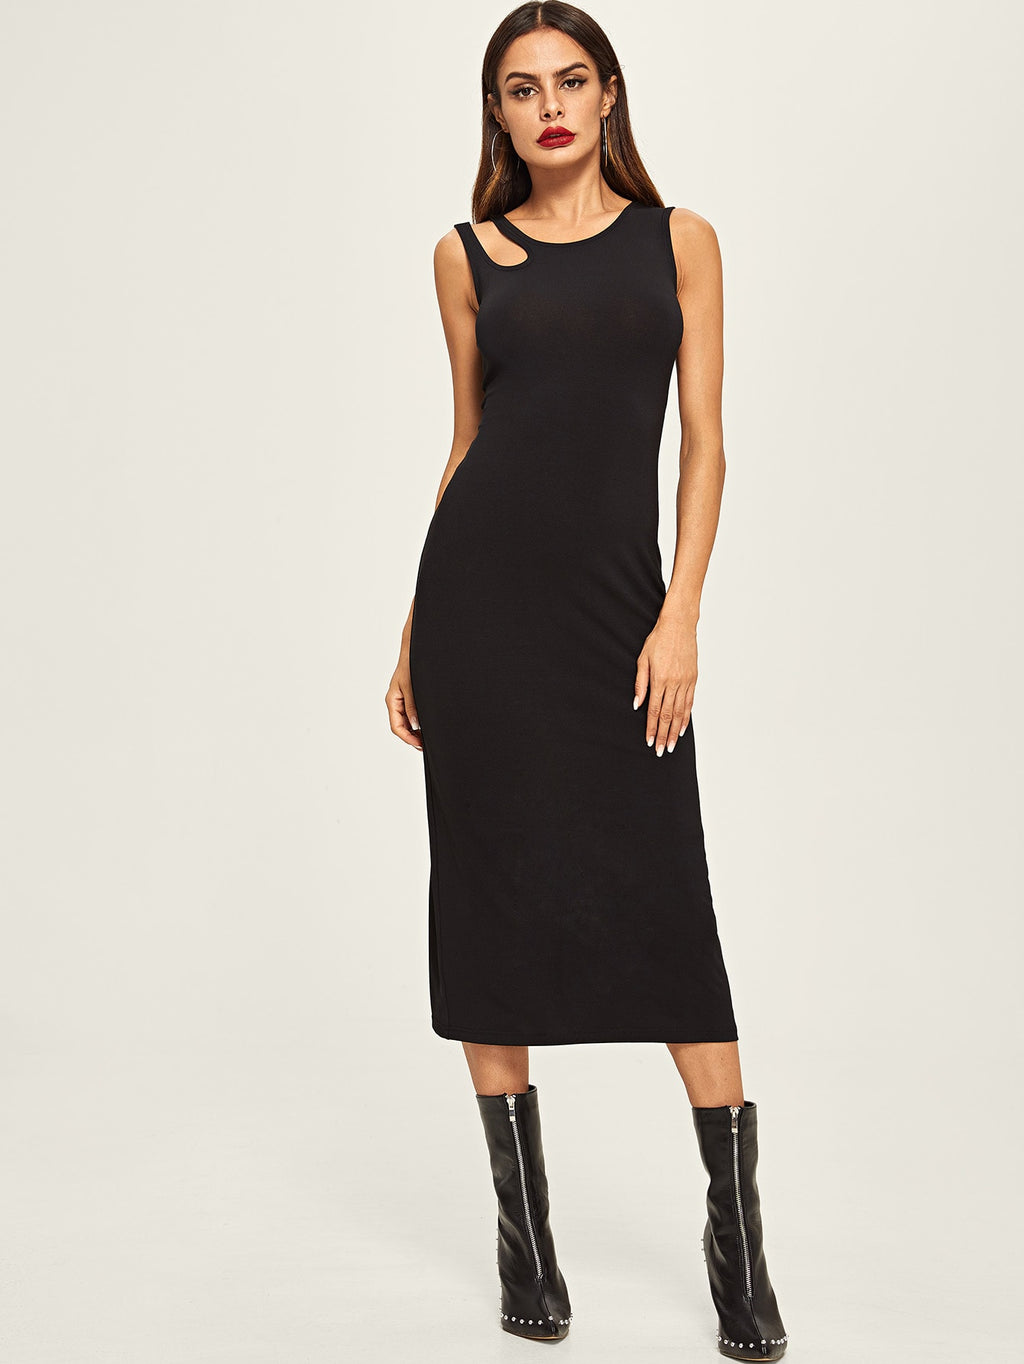 Asymmetrical Cut Out Shoulder Tee Dress